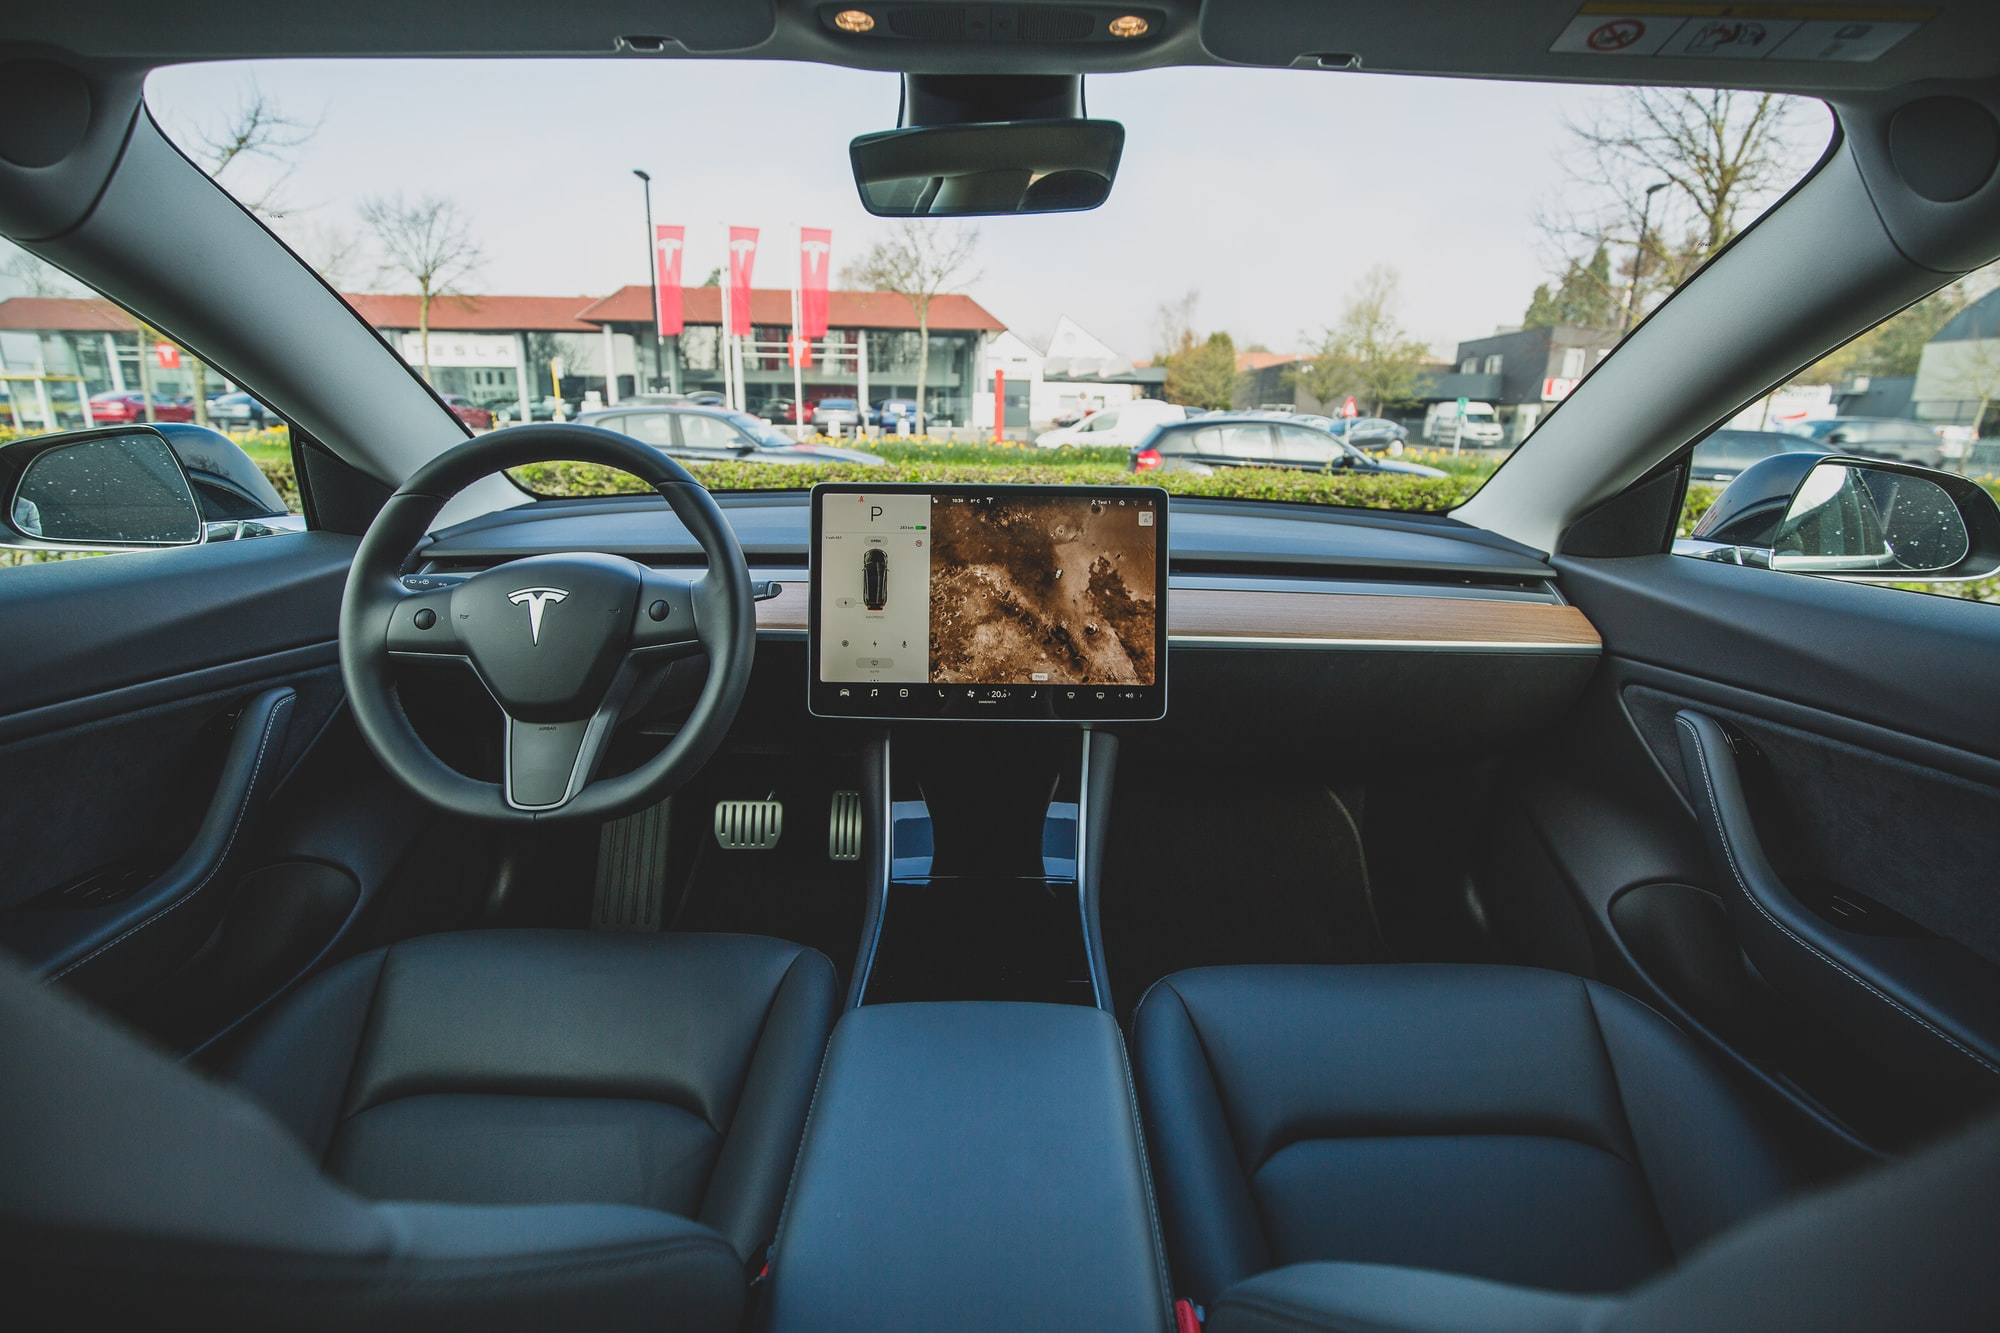 I Rented a Tesla Model S for $25/hr From Getaround. This Was My Experience.